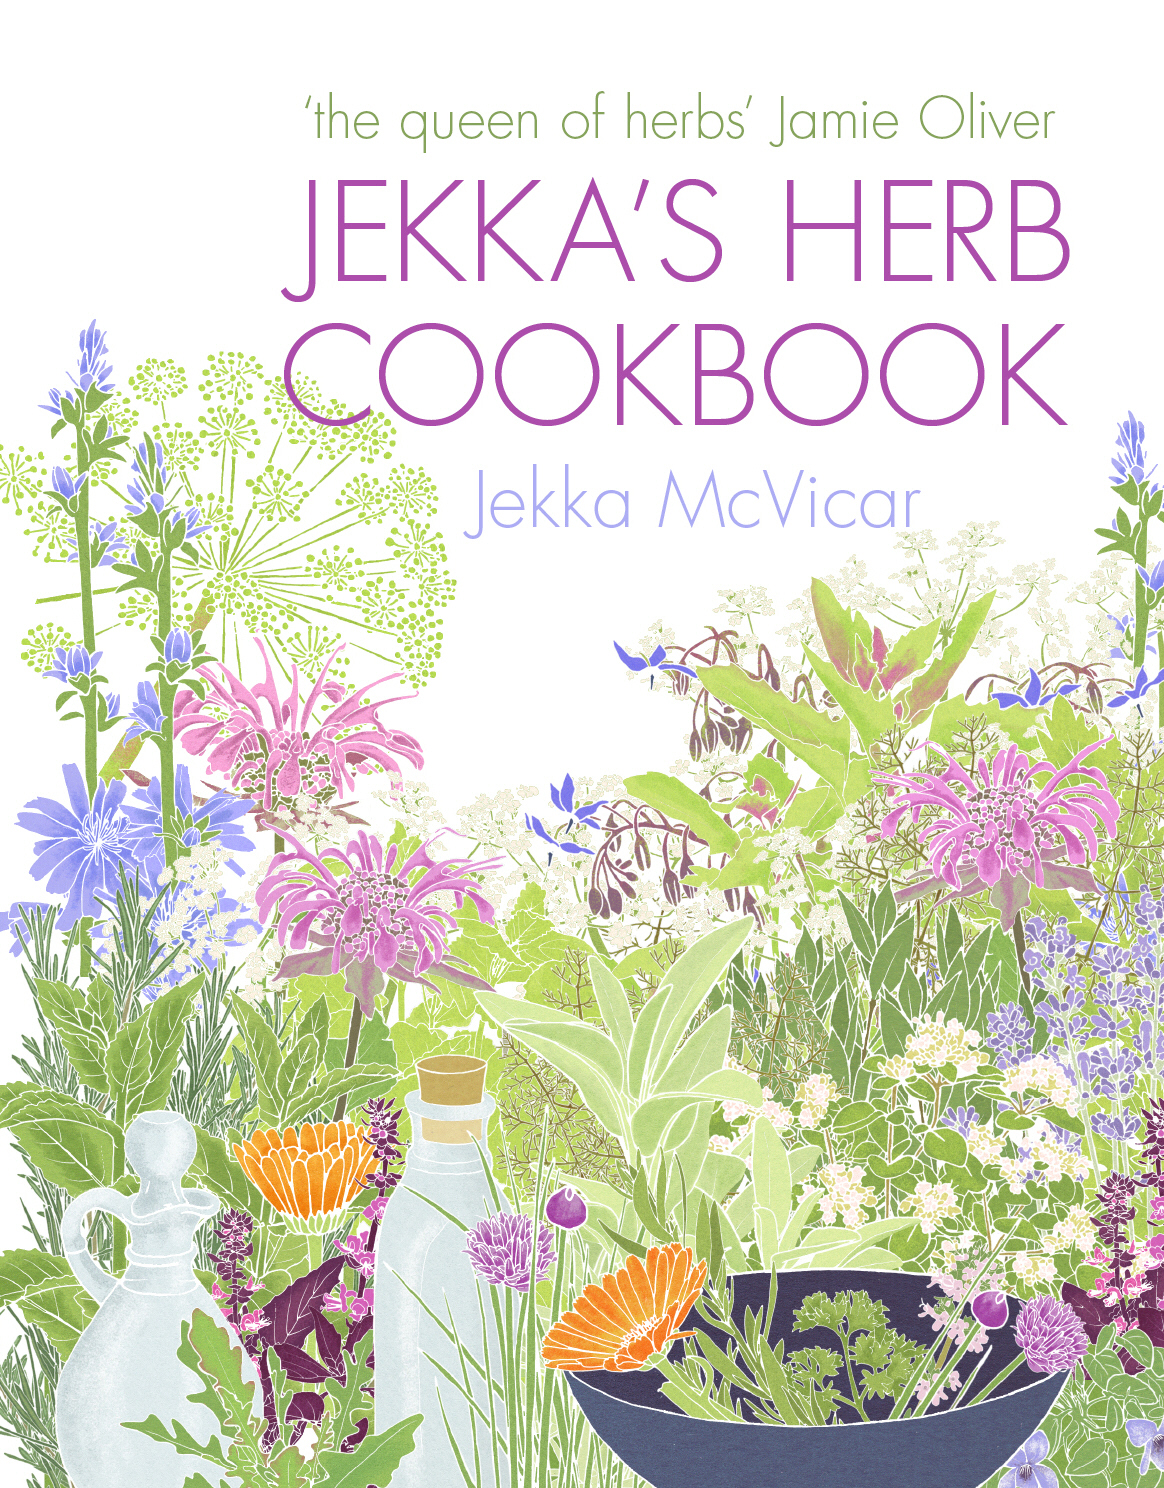 Jekka's Herb Cookbook Foreword by Jamie Oliver